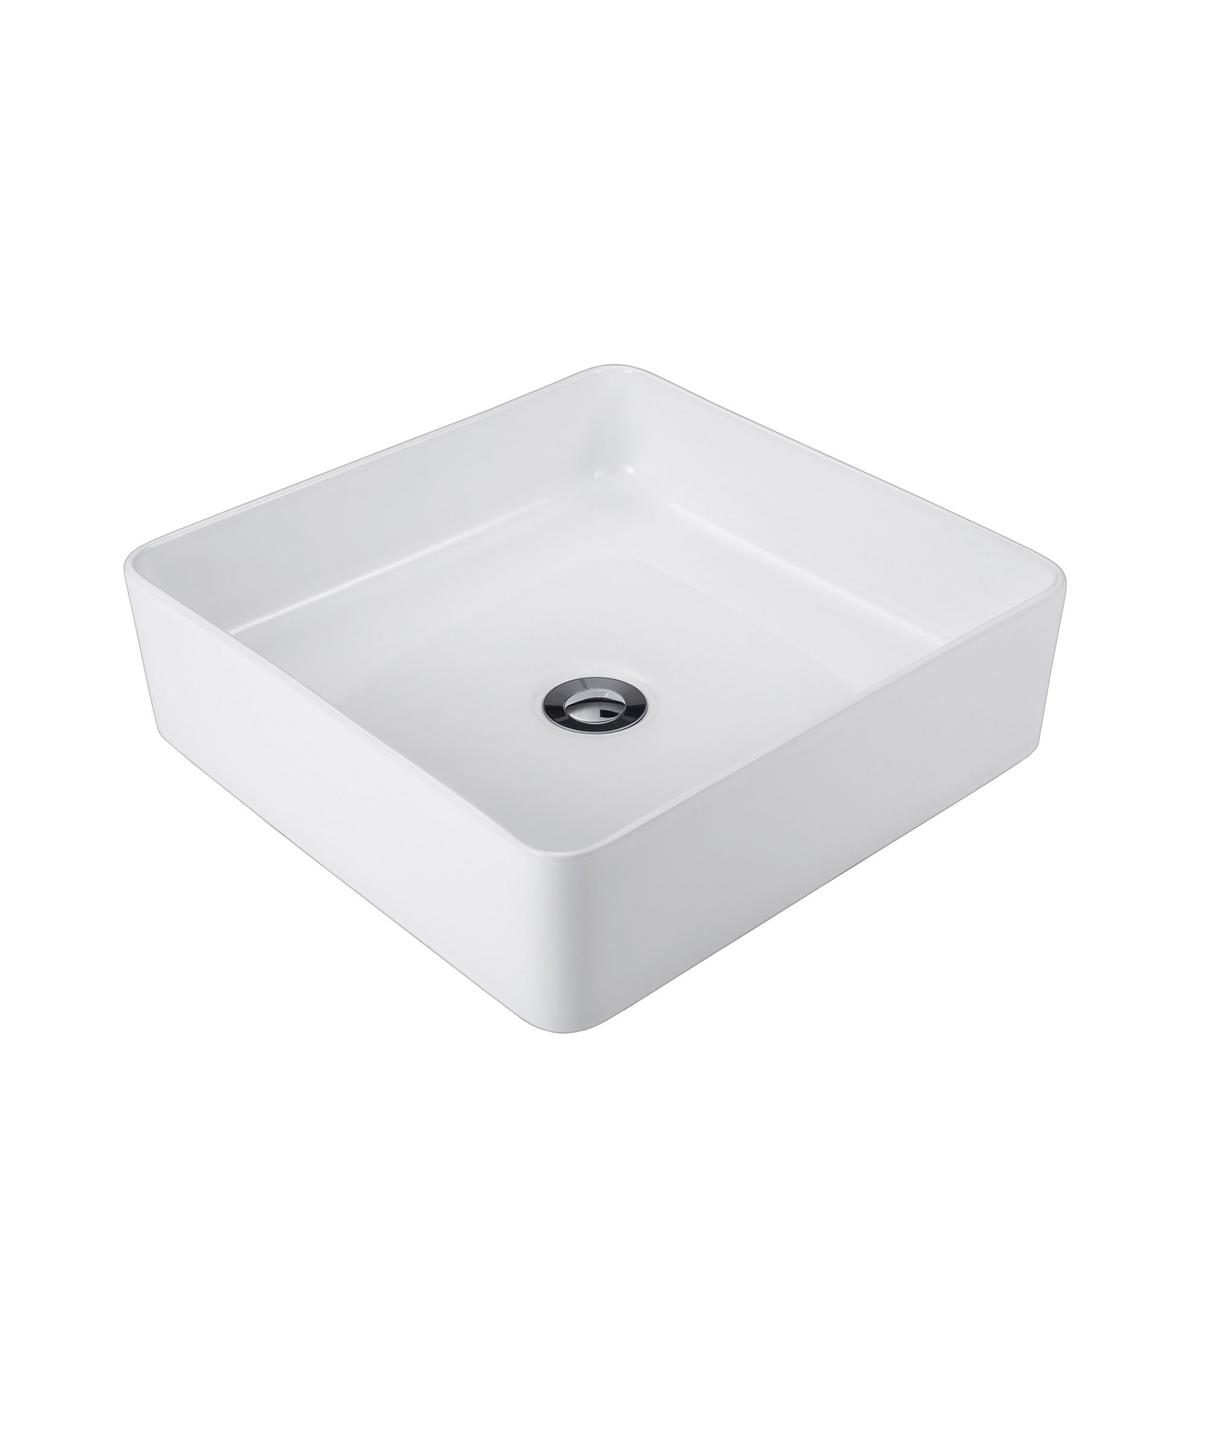 SEIMA ACERO 1080 KITCHEN SINK